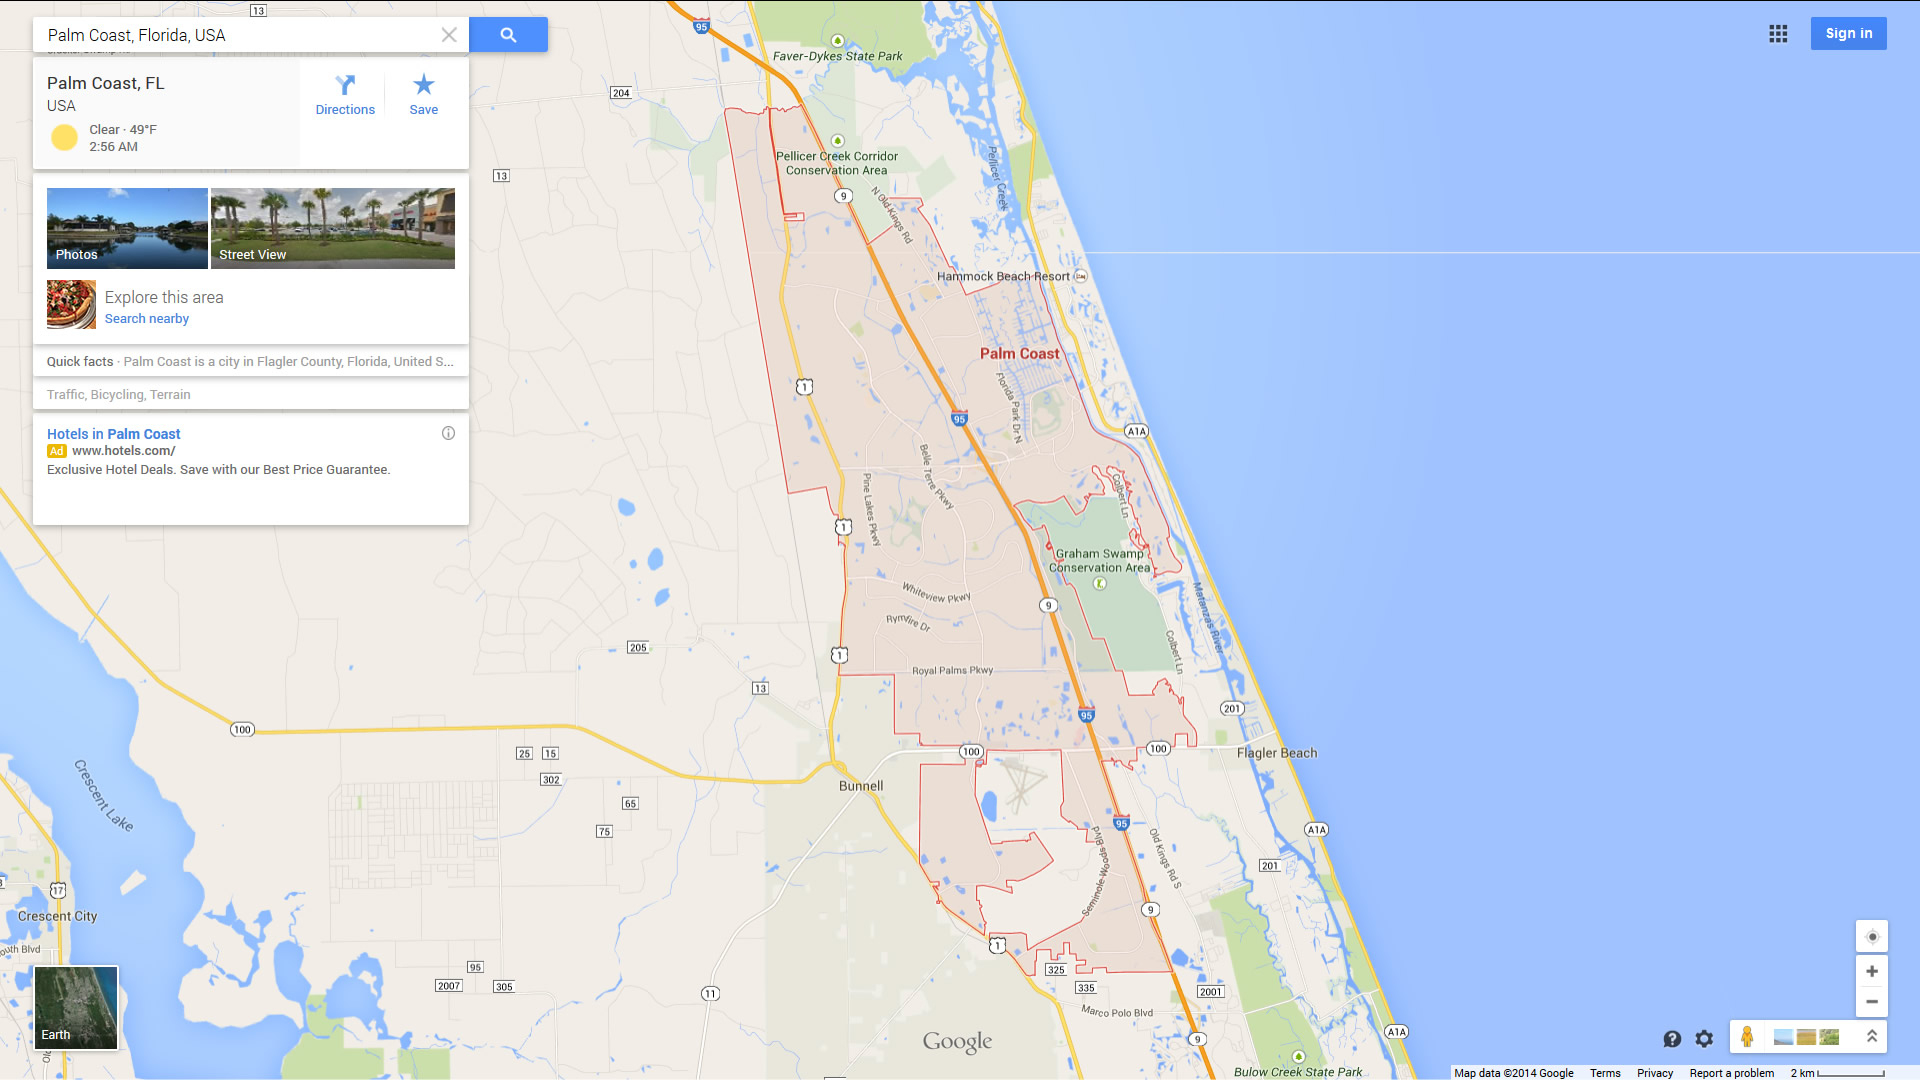 Palm Coast Florida Map - Where Is Palm Coast Florida On The Map